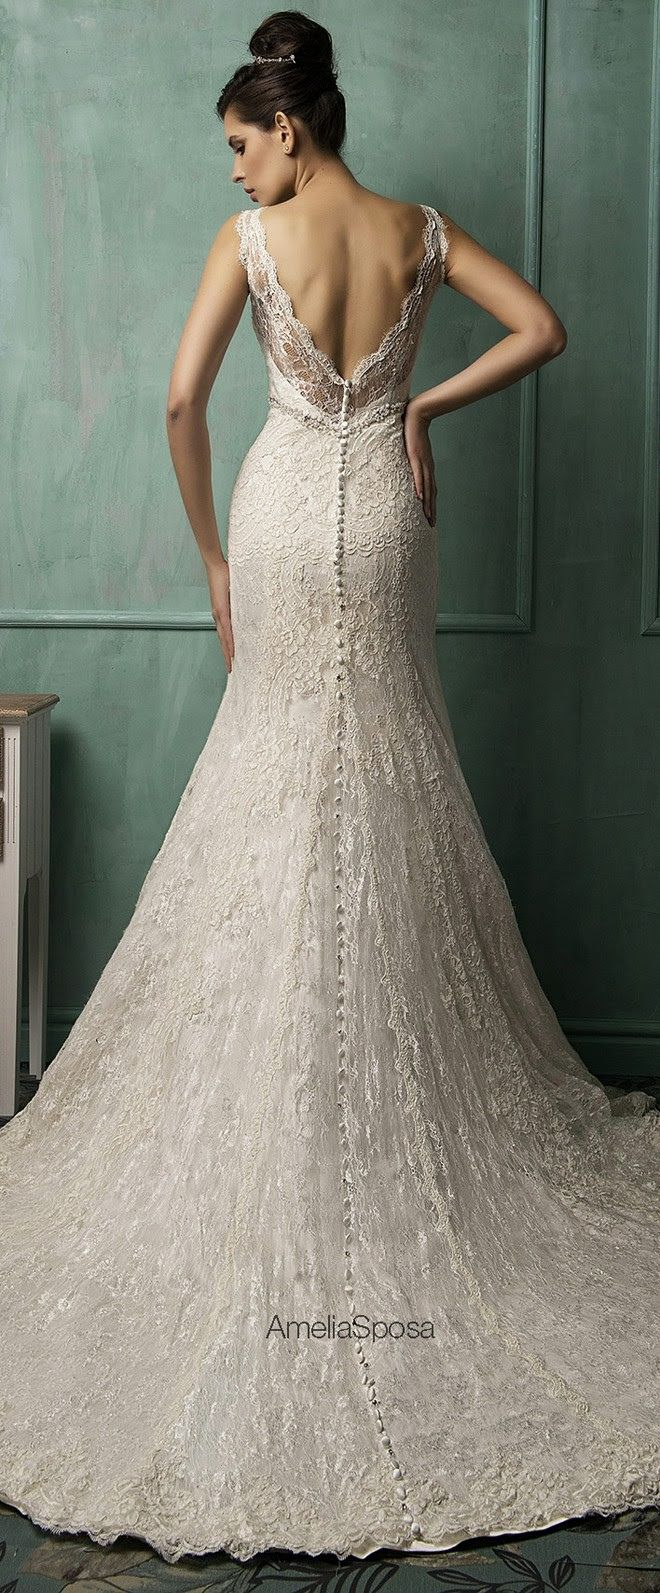 Wedding decorations for church december 2018 Pin by jooana on wedding ideas for you  Pinterest  Wedding dresses